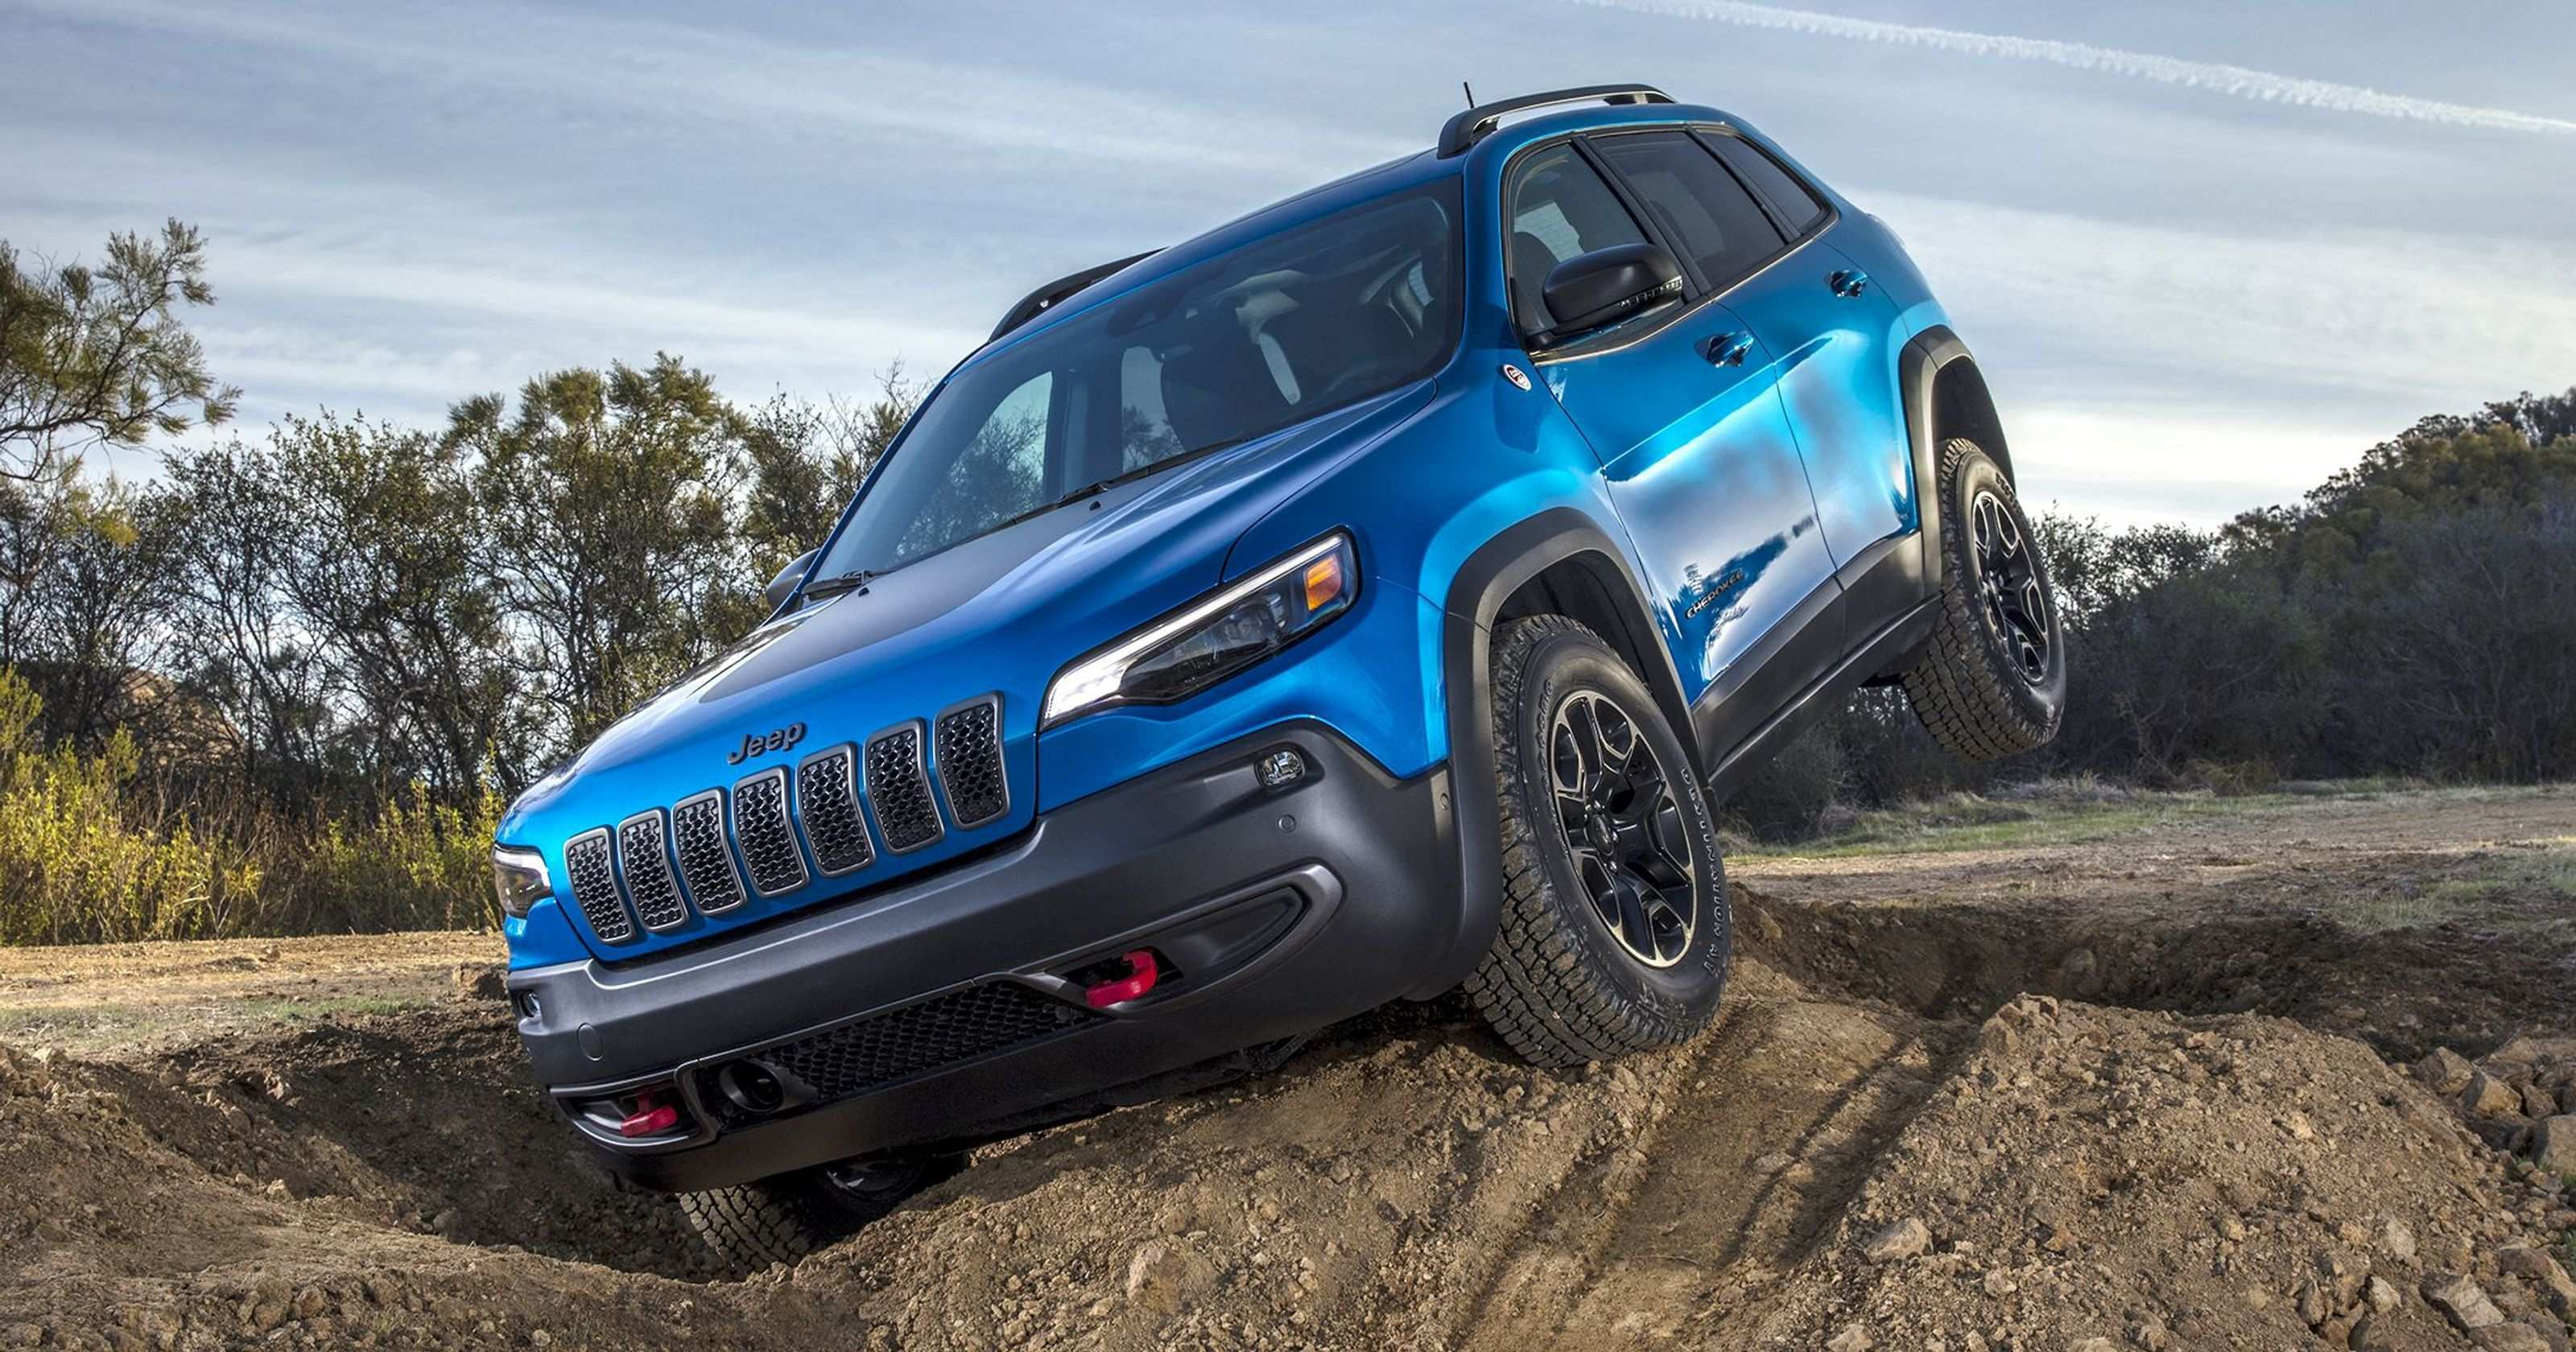 25 Gallery of New Blue Jeep 2019 Review History by New Blue Jeep 2019 Review